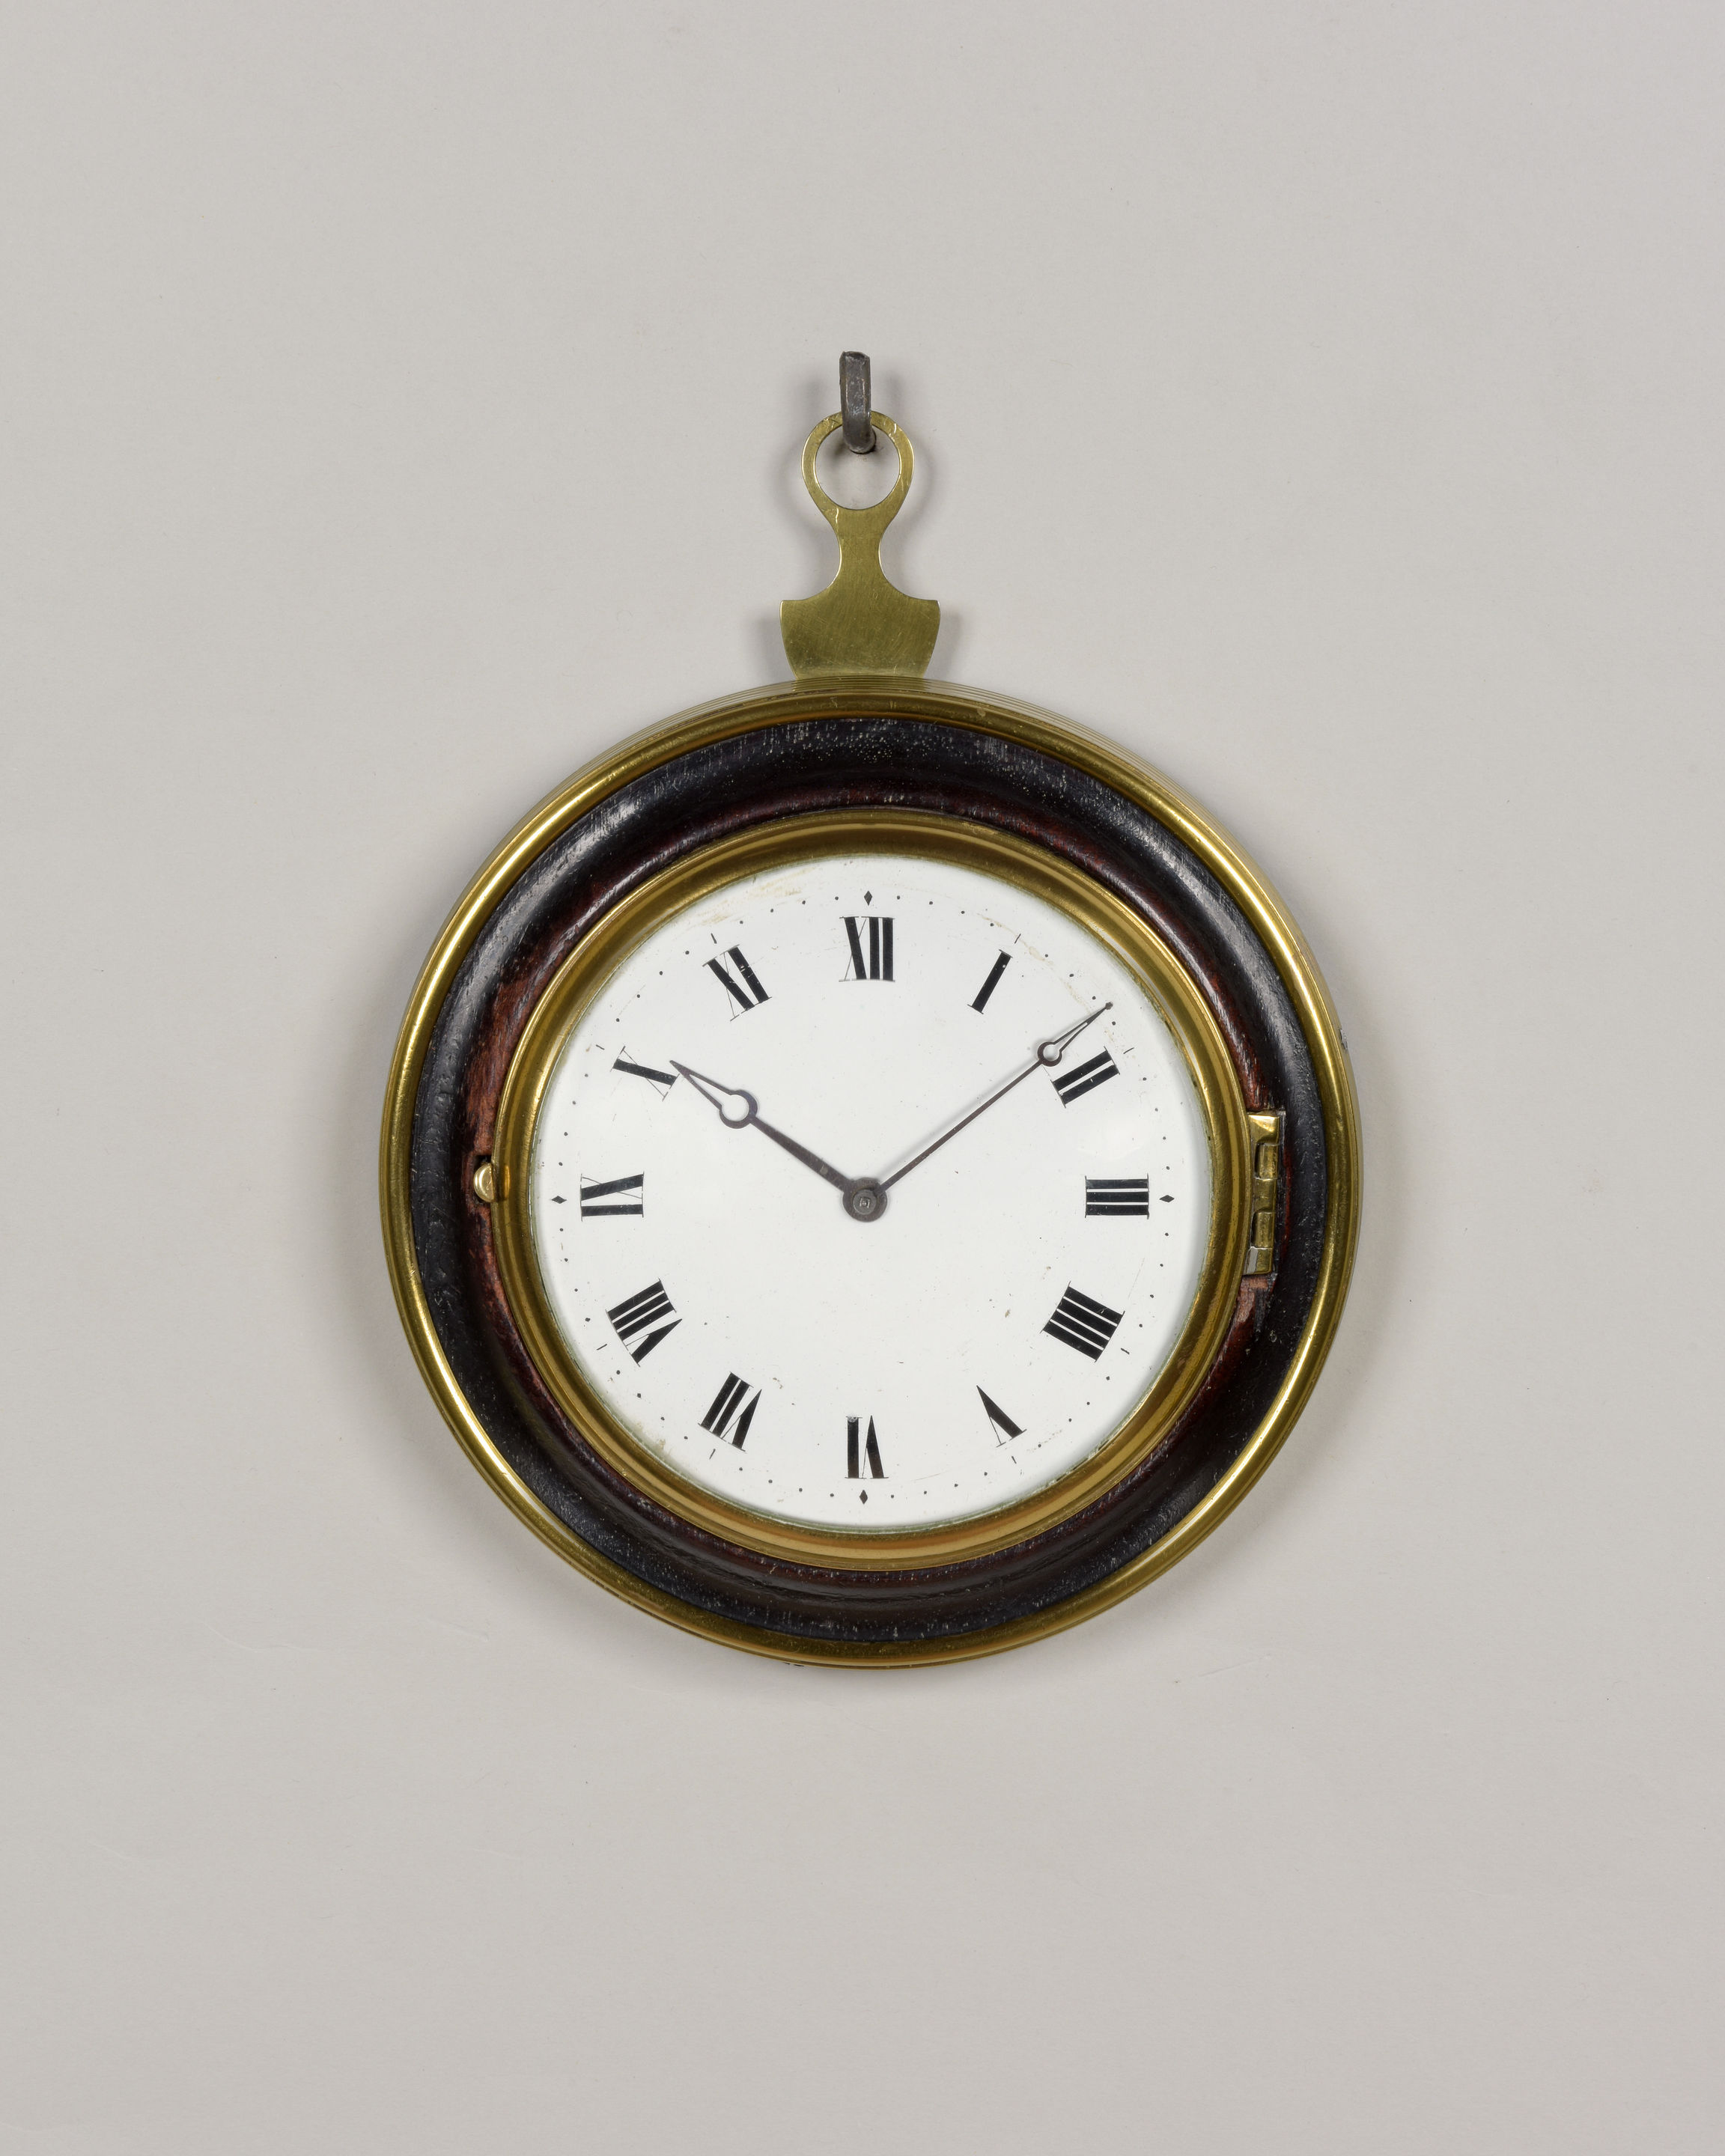 REID AND AULD N° 1100. A GOOD ENGLISH REGENCY SEDAN CLOCK